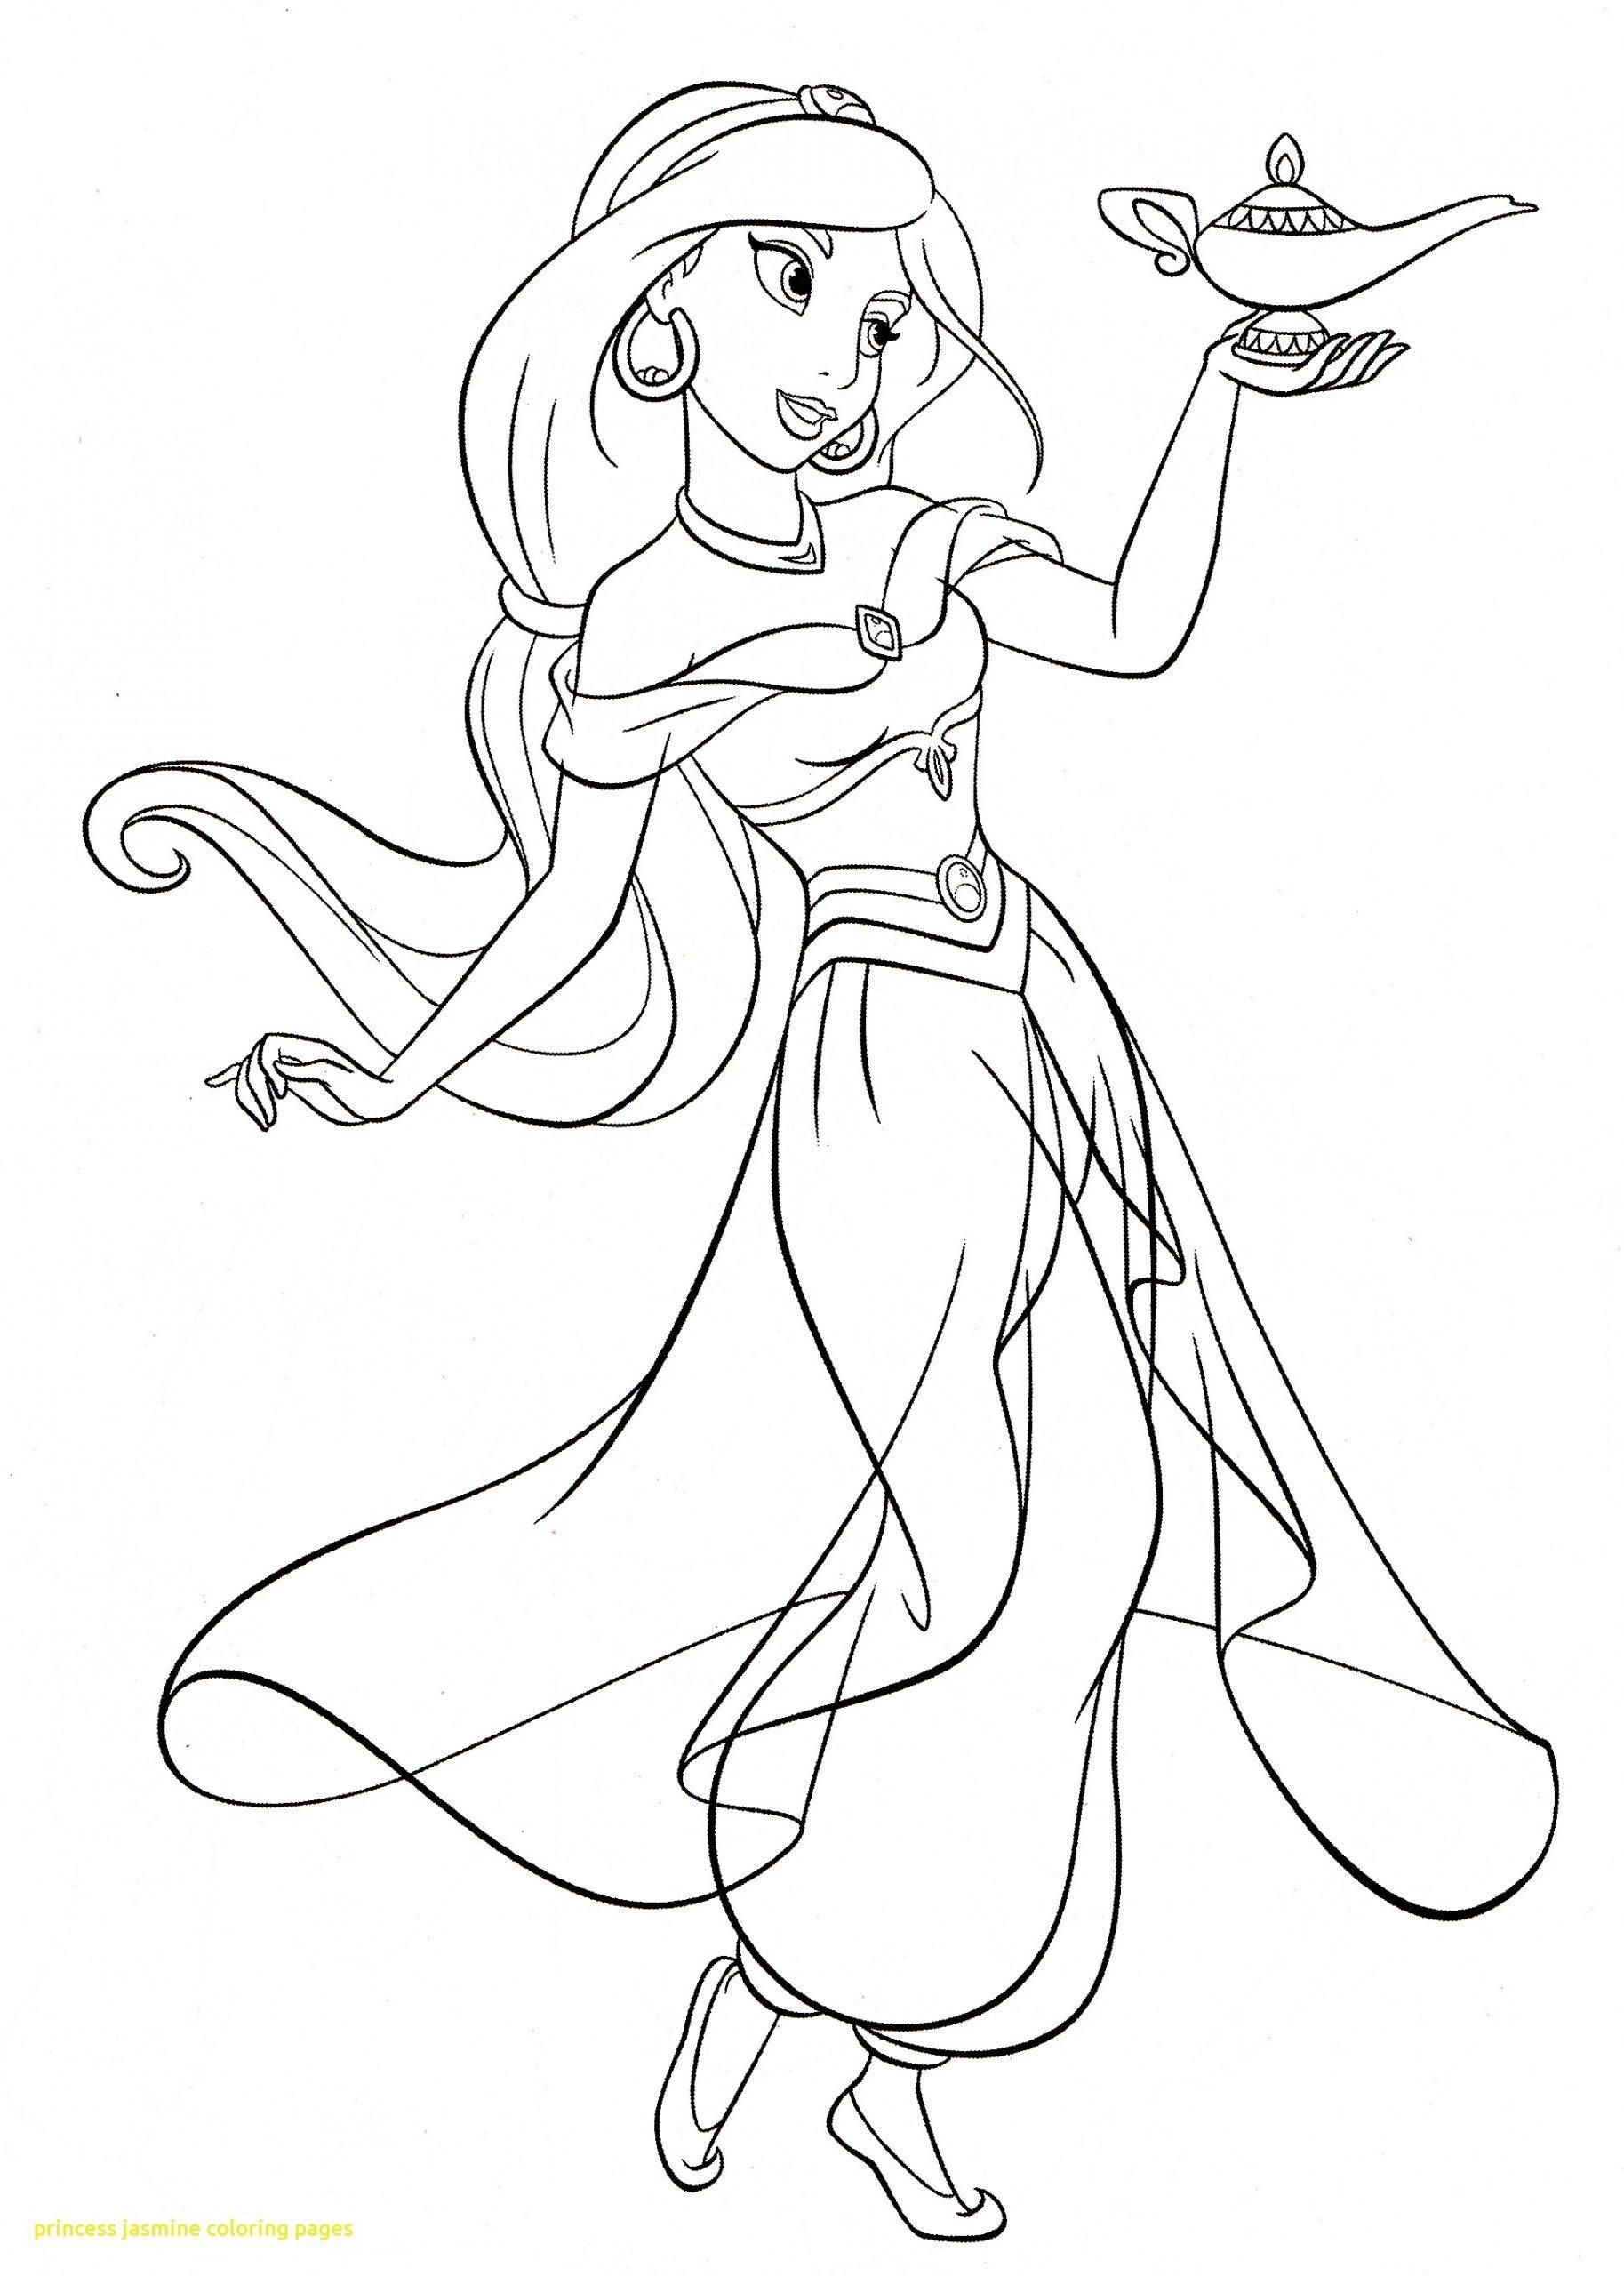 51 Jasmine Coloring Pages Pdf In 2020 Disney Princess Coloring Pages Princess Coloring Disney Coloring Pages